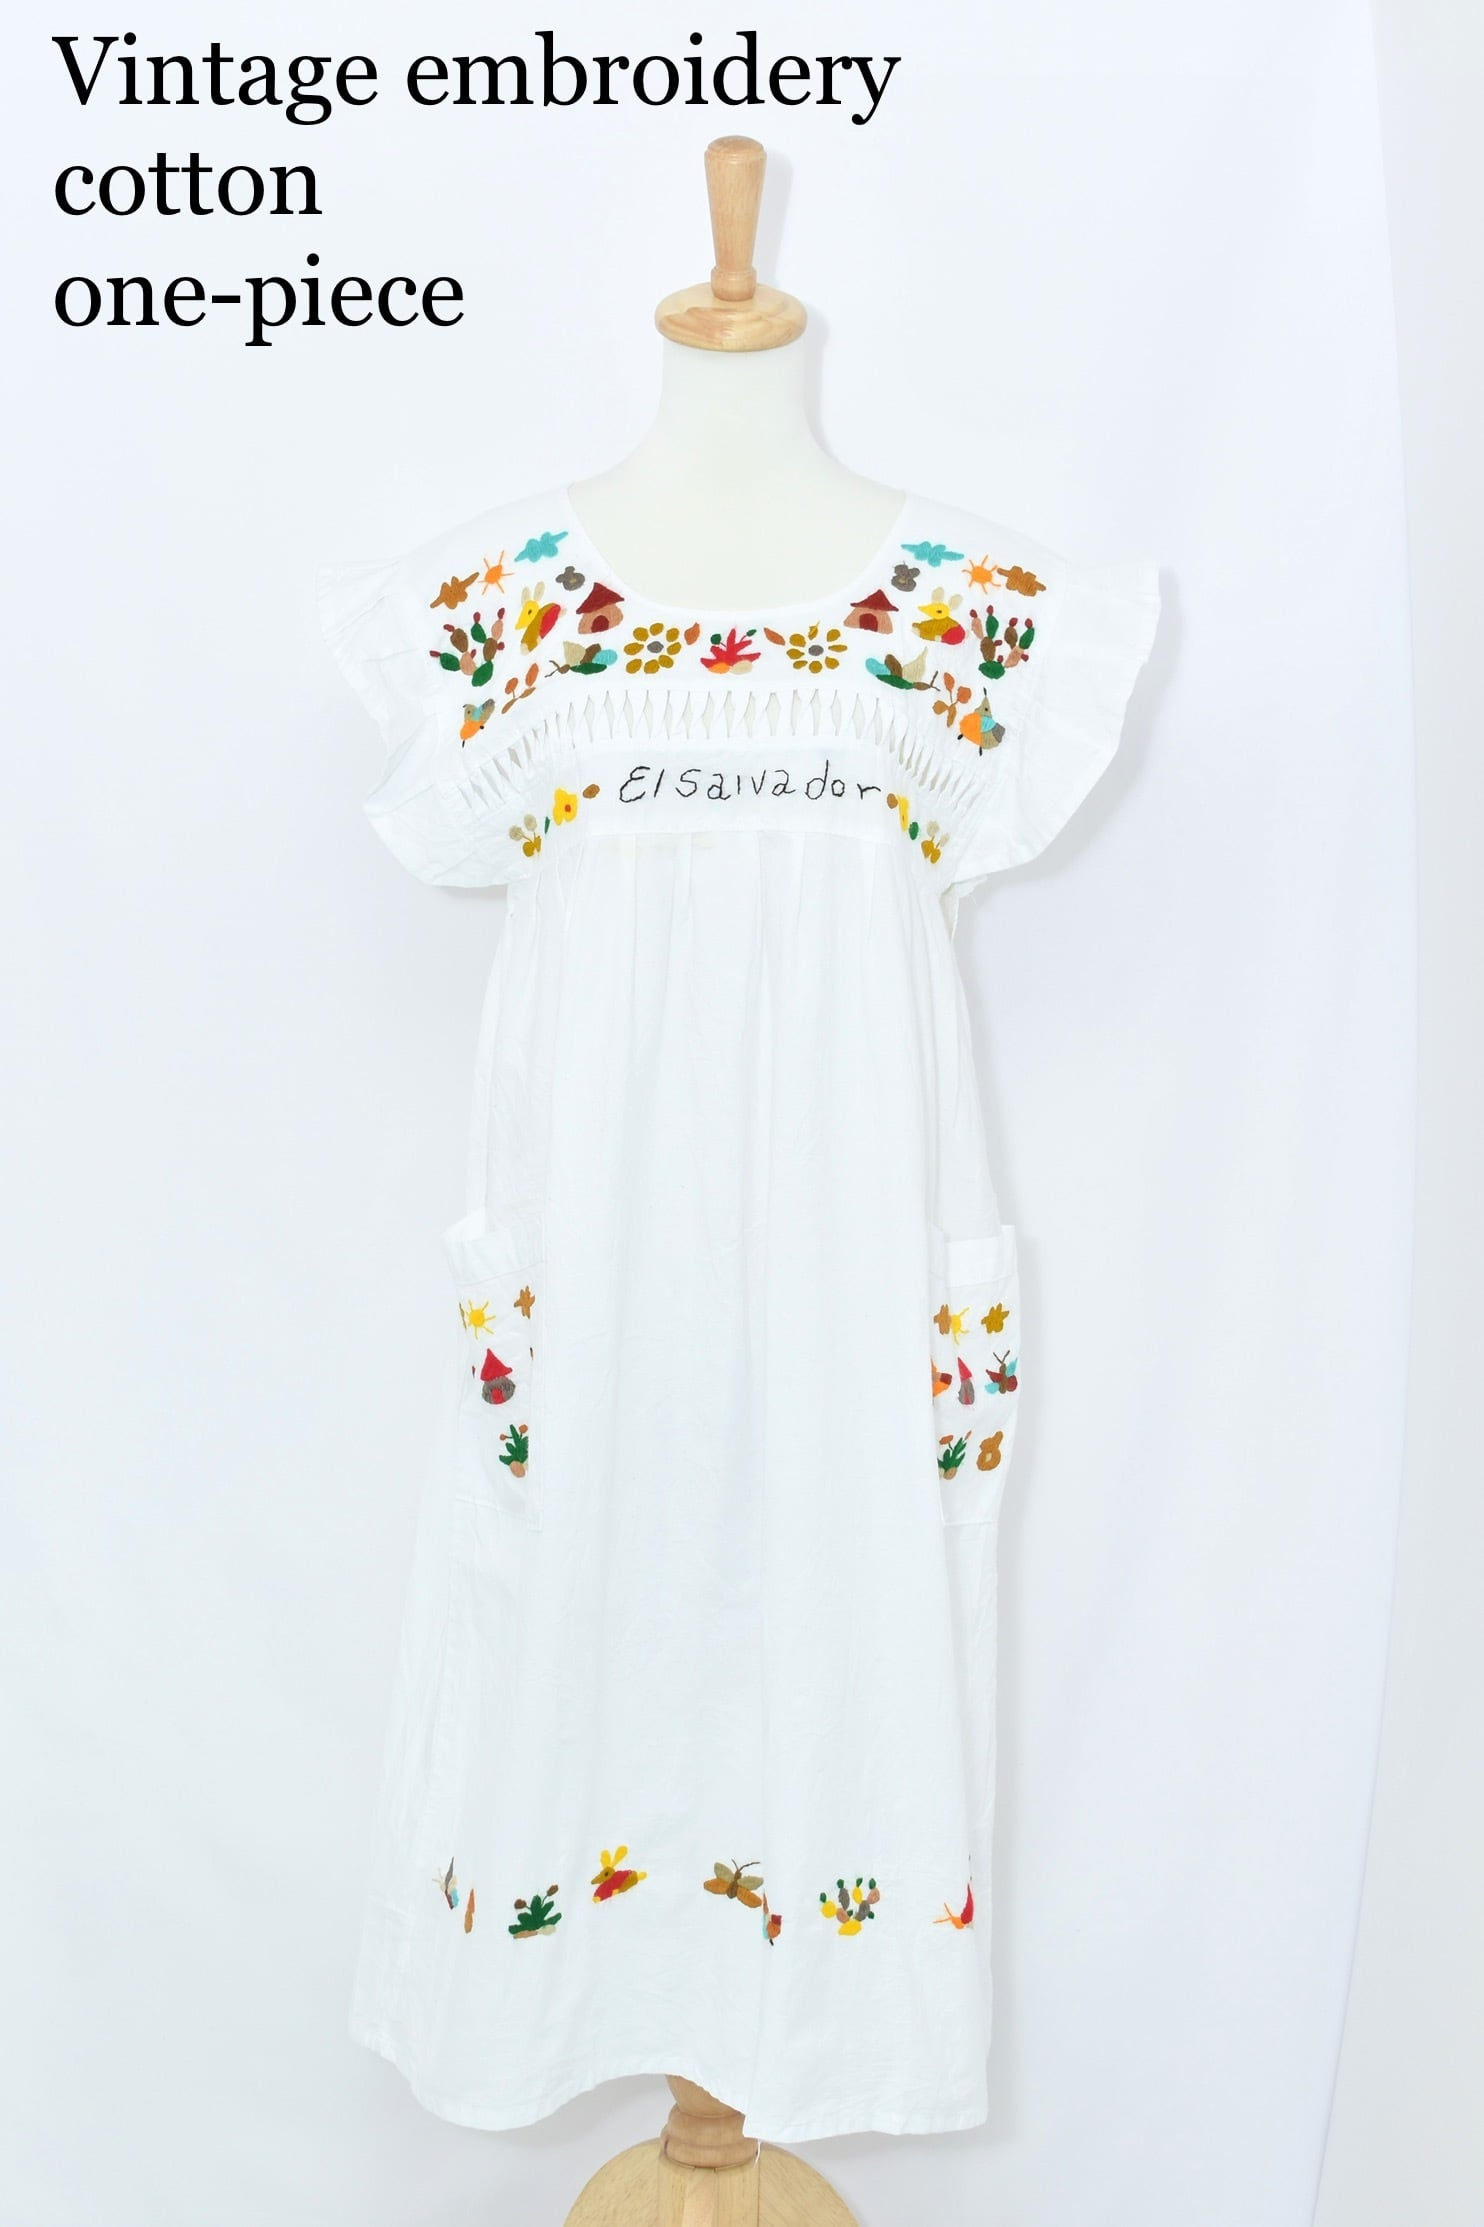 vintage embroidery cotton one-piece